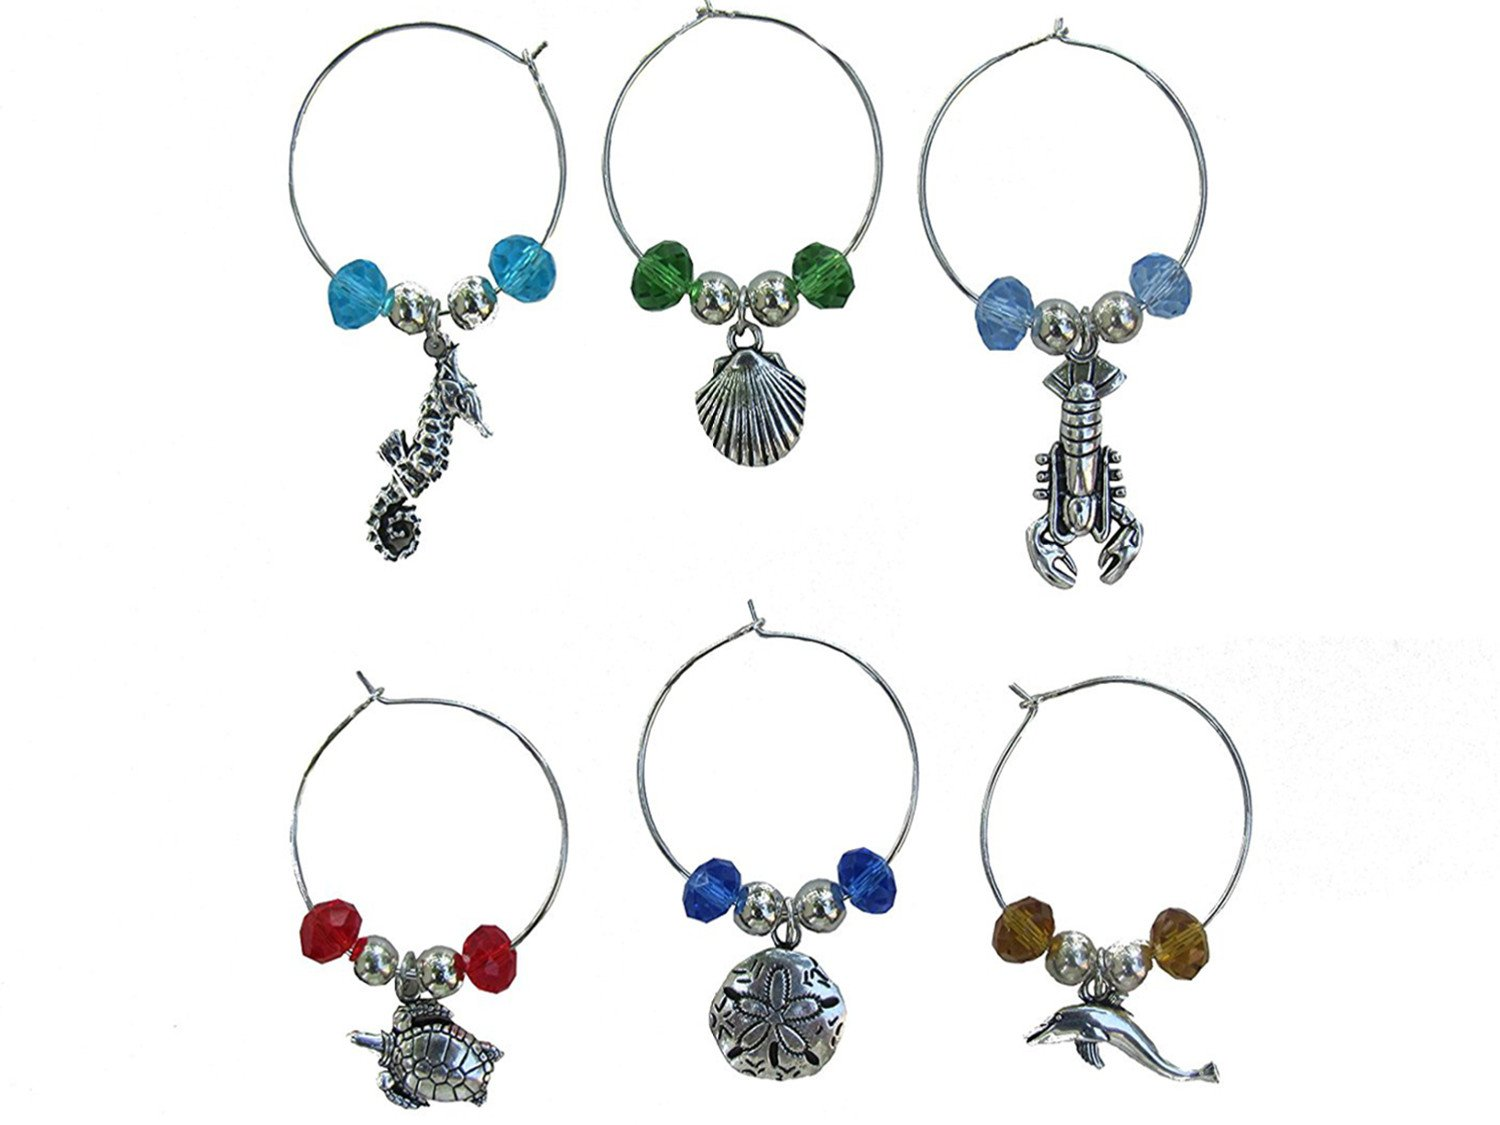 WINE GLASS (tag/marker) SEASHORE CHARMS - set of 6 (style 1)